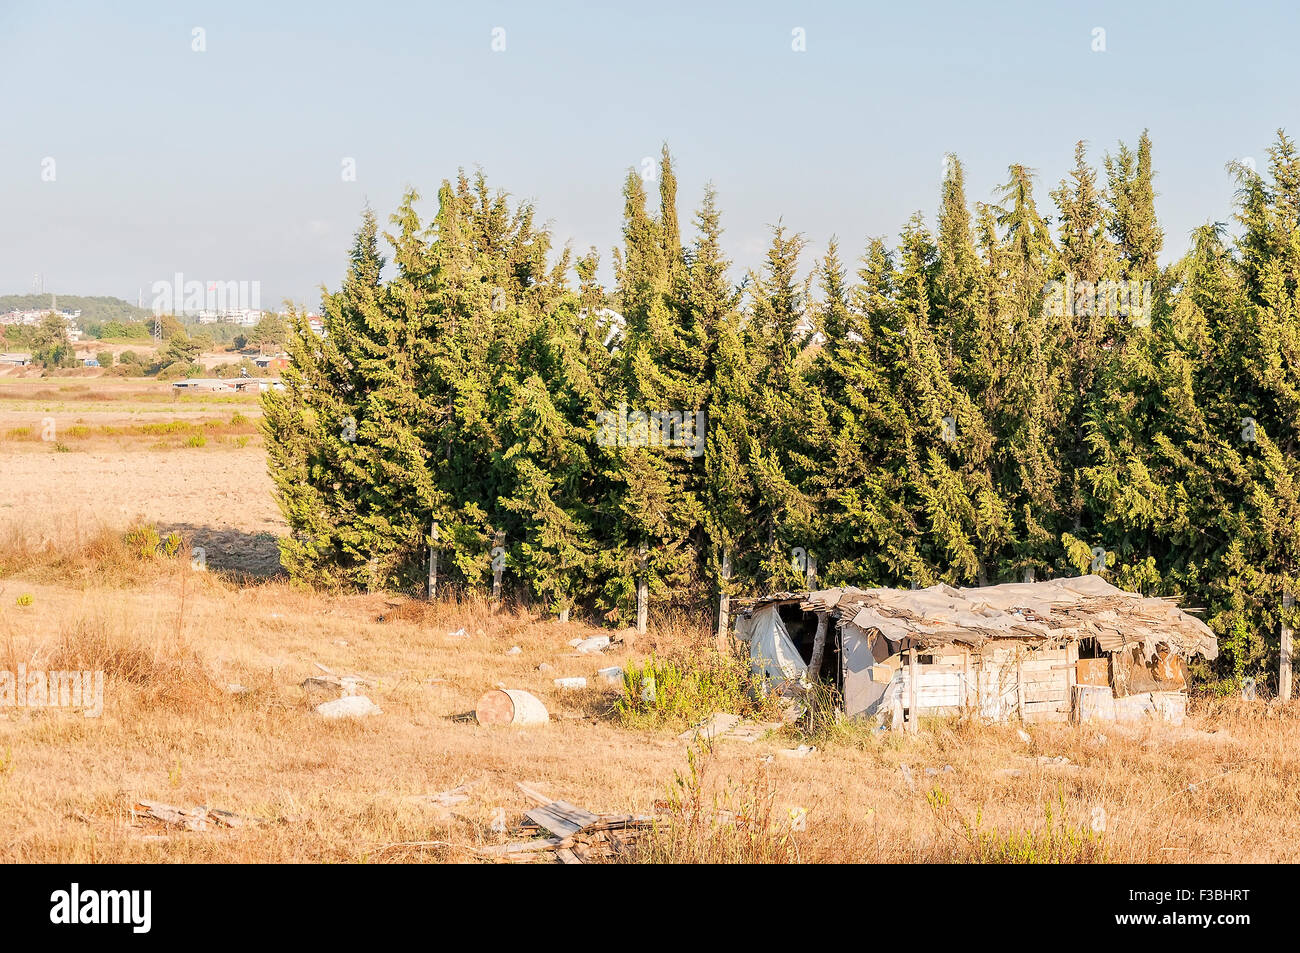 An abandoned shanty house located in rural Turkey. - Stock Image